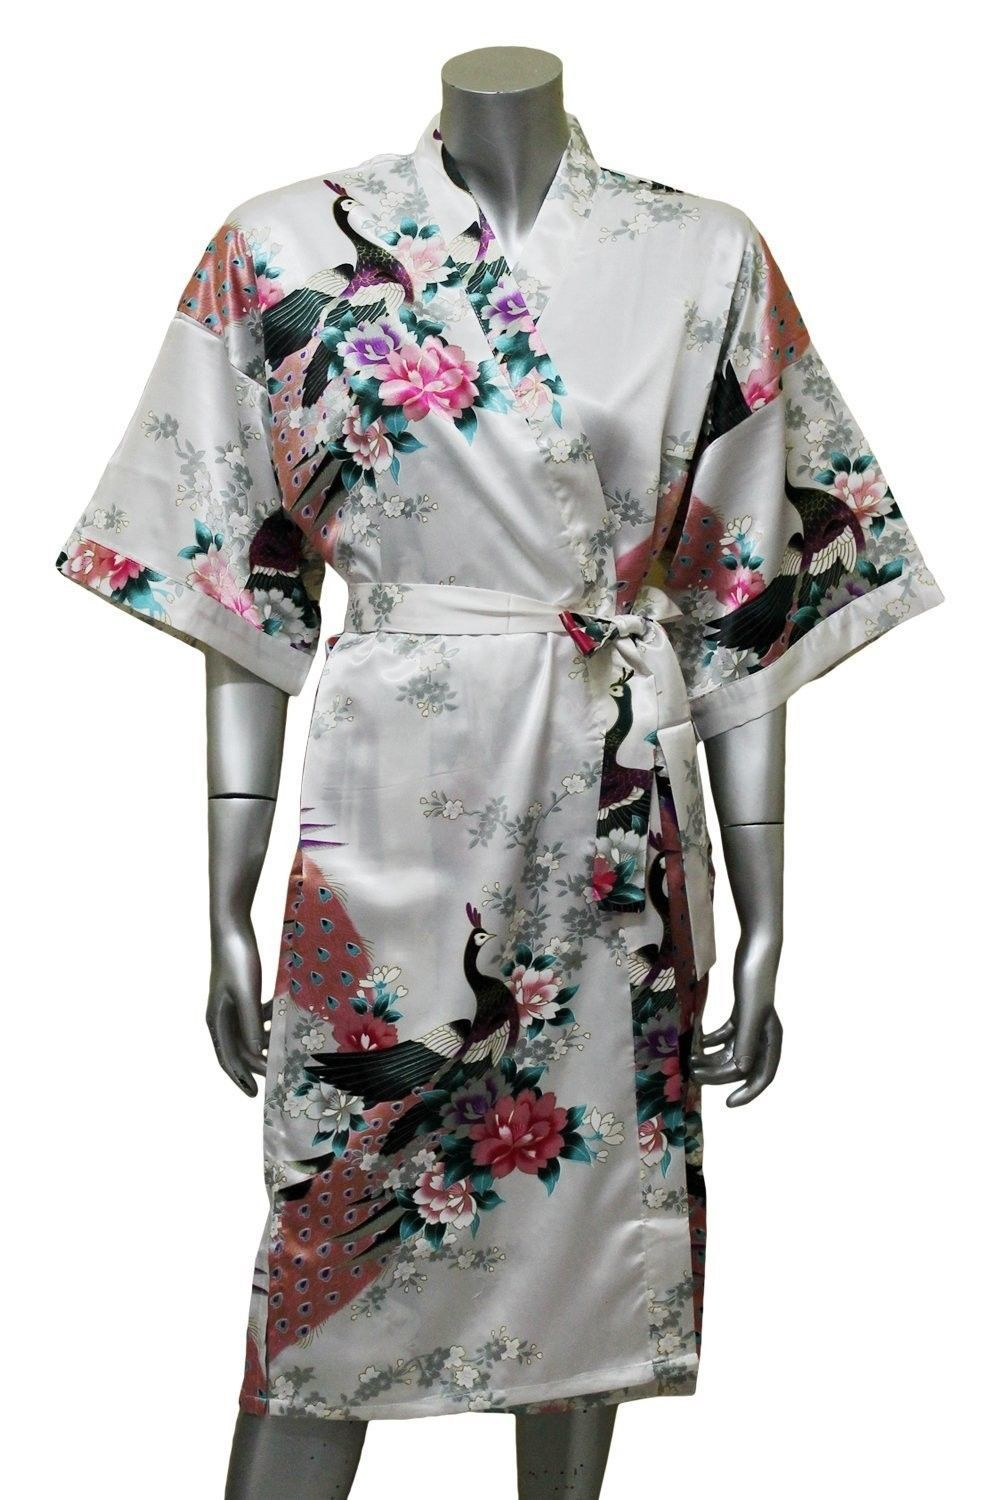 vintage s silk kimono robe + 20s floral silk kimono robe + s Japanese kimono robe = the Hong Kong Garden silk robe Japanese kimono Silk kimono robe Chinese kimono Kimono outfit Kimono fashion Kimono Style Kimono floral Boho Kimono Vintage Kimono PAJAMAS Suits Lingerie Robe Dress Robes Bra Mantle Woman Fashion Embroidery Morning Coat.